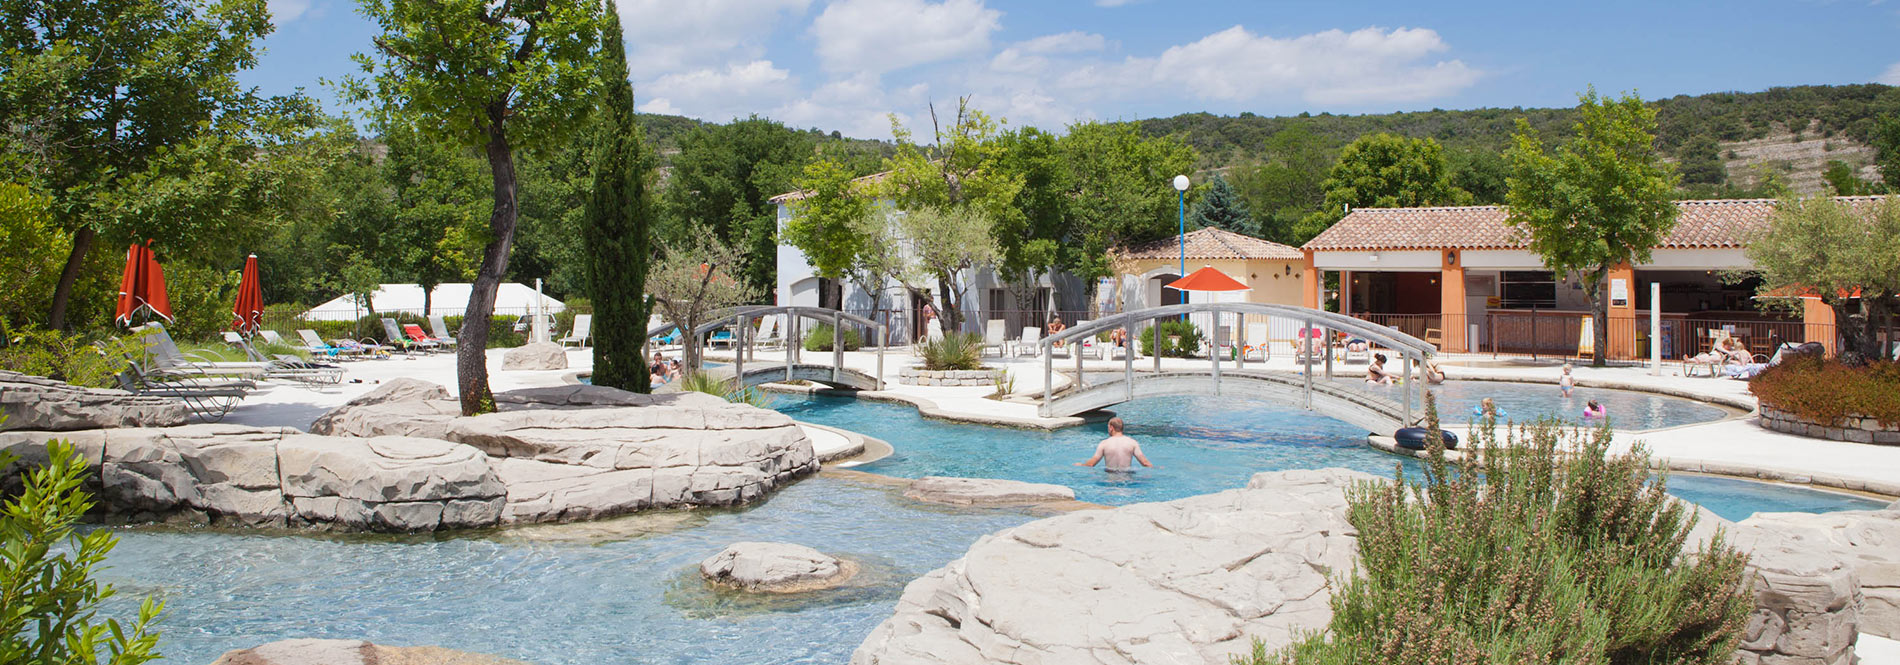 Camping swimming pool discover the swimming pools of the for Camping avignon avec piscine